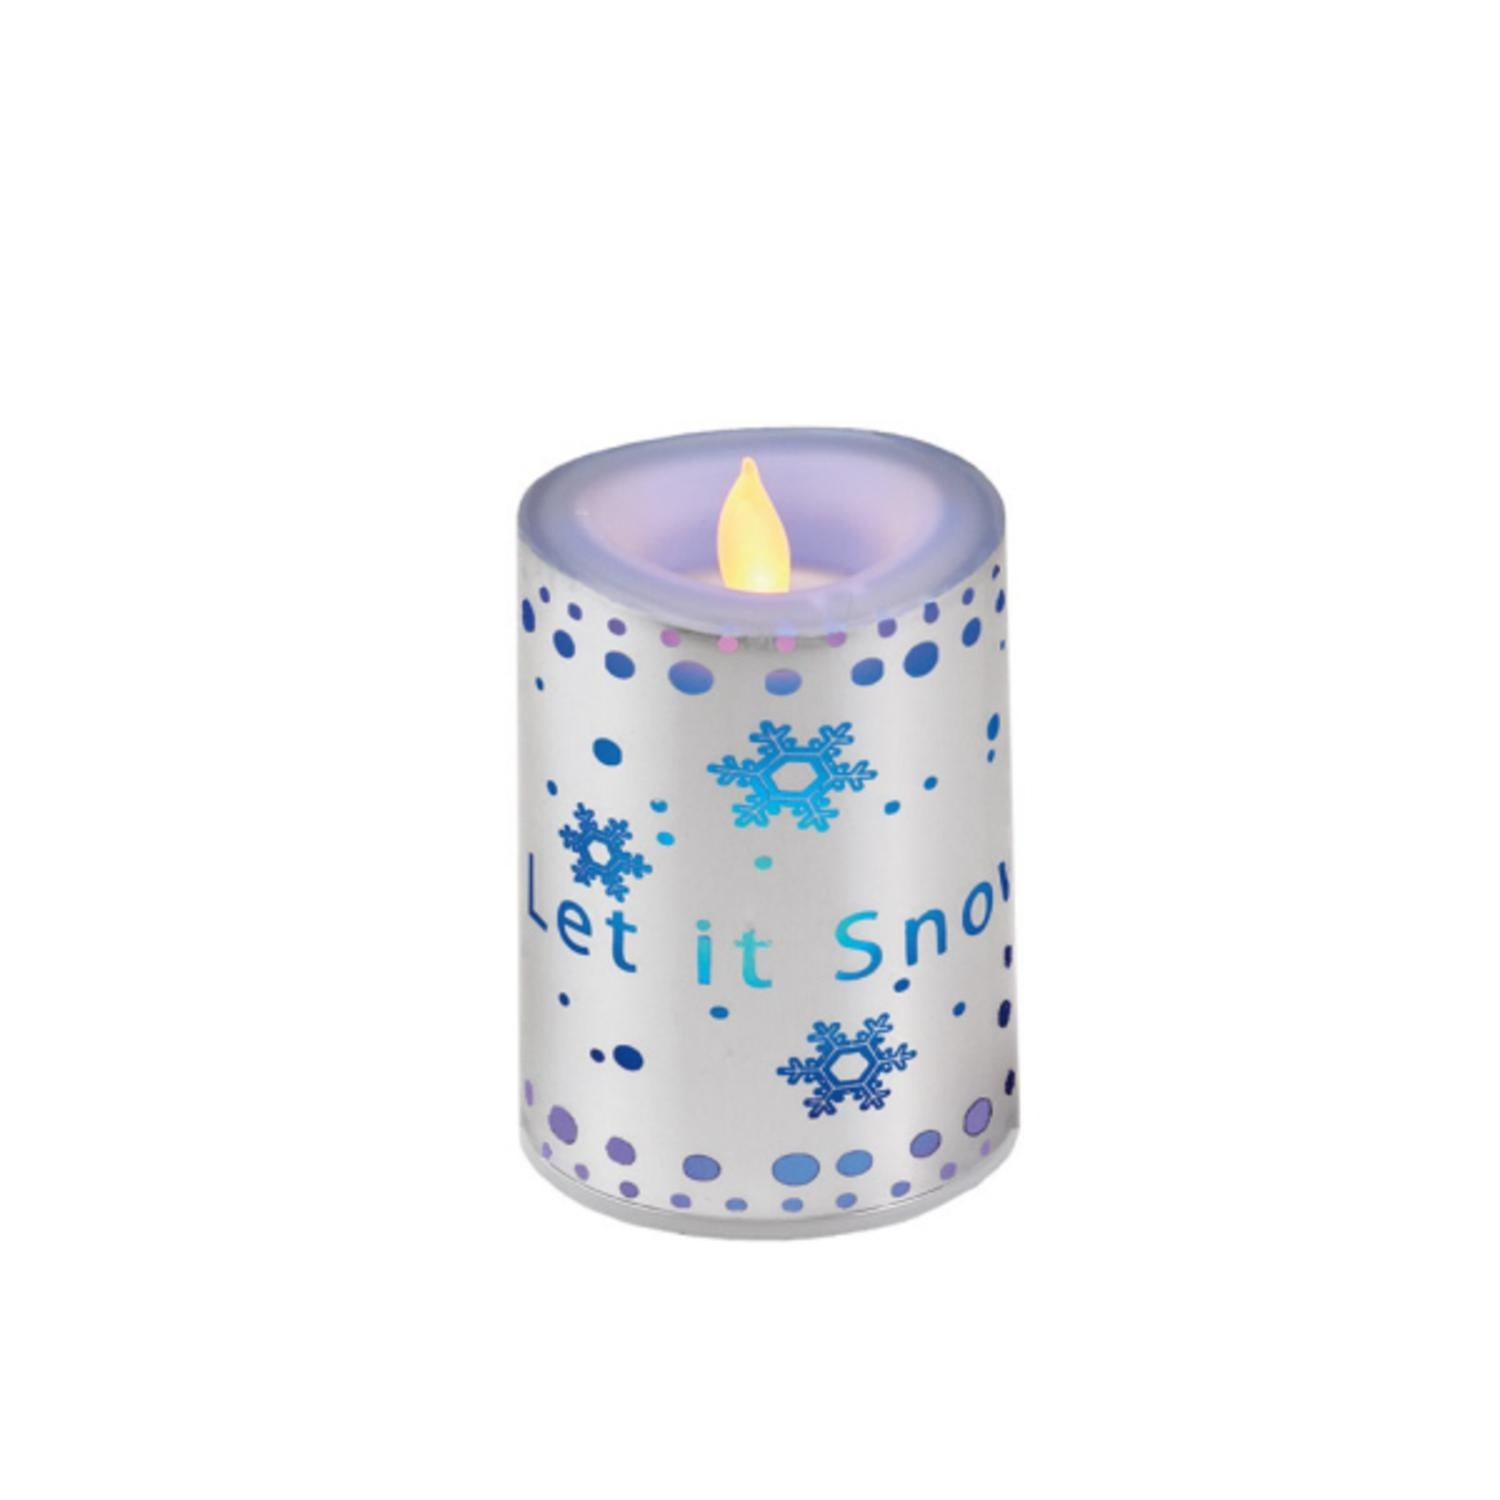 4 Silver Colored Let It Snow Flameless Candle With Flickering Led Lights Overstock 16544883